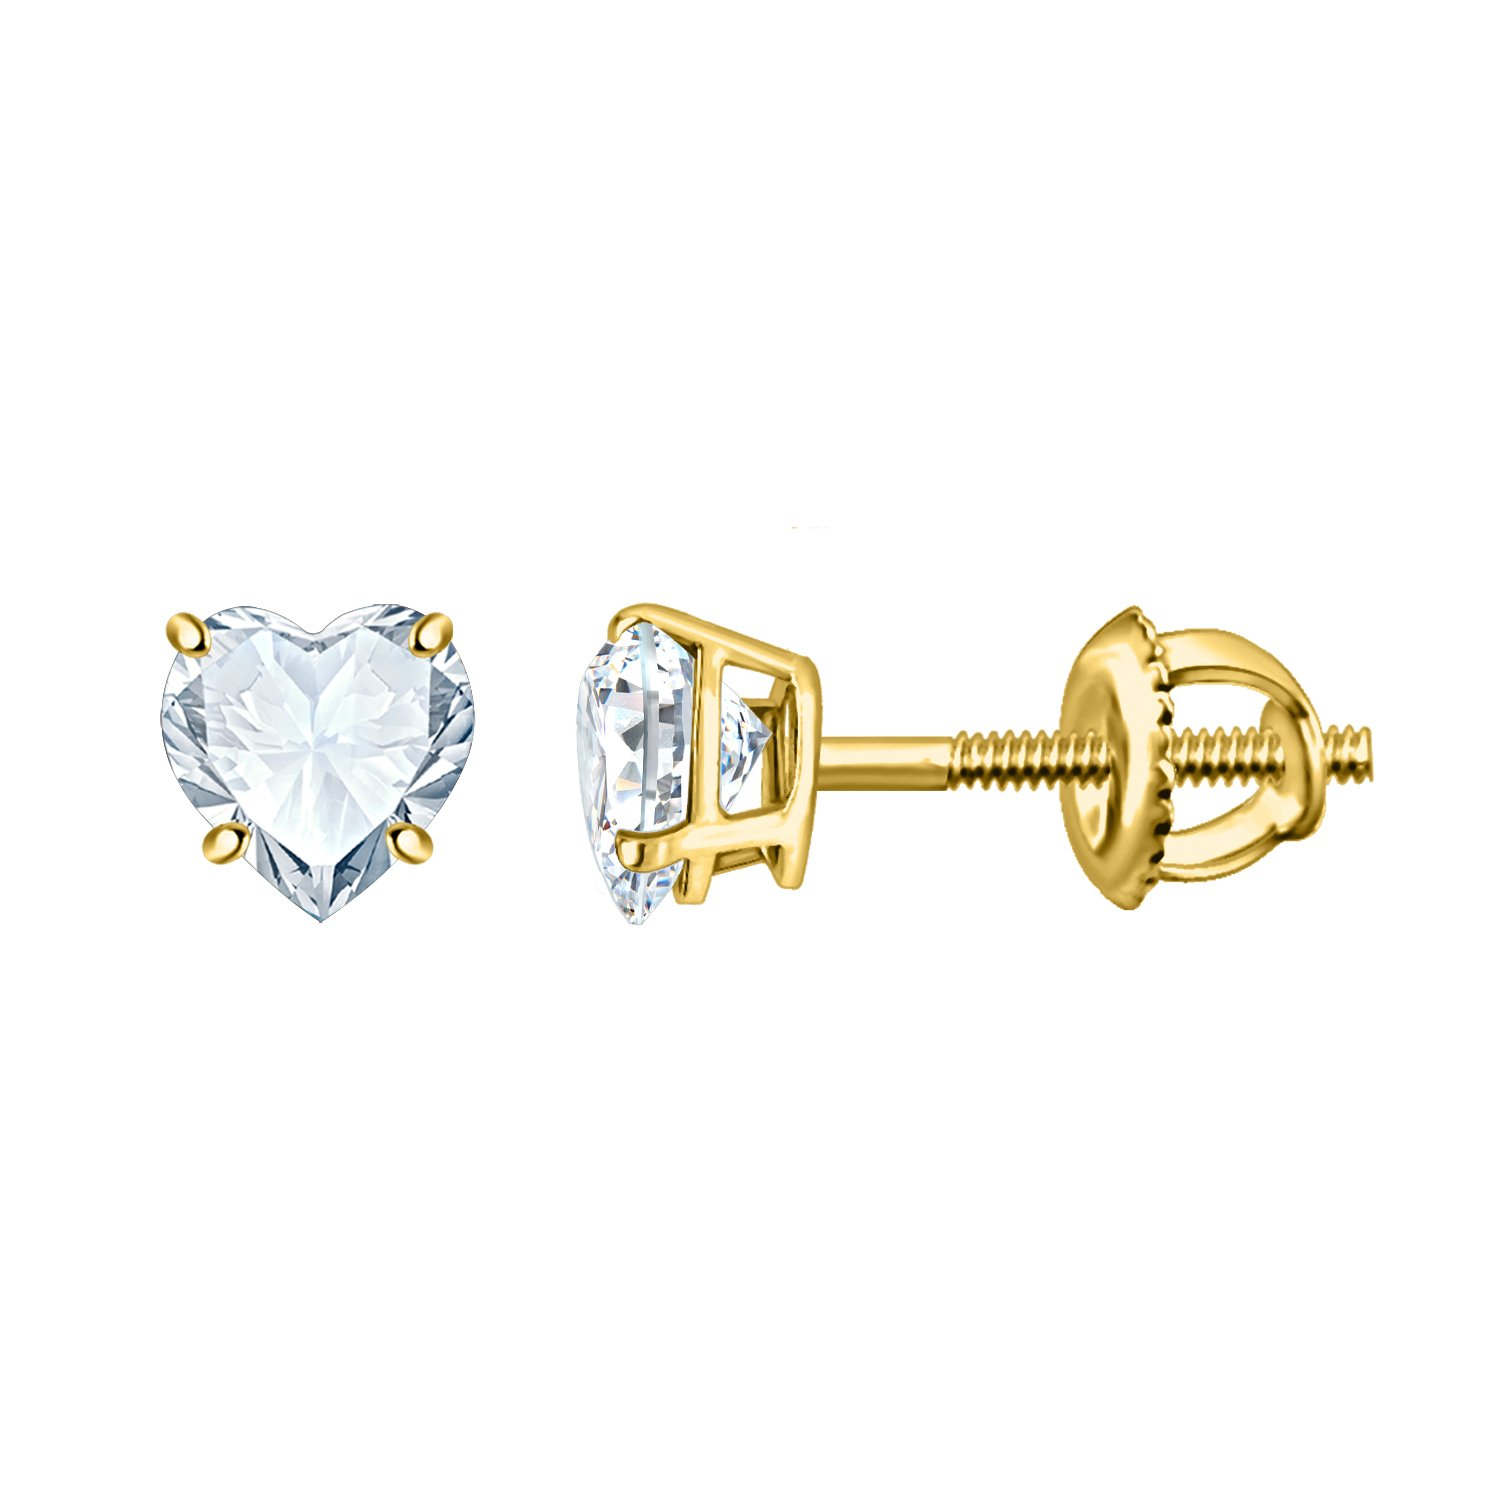 Silver Dew White Diamond Earring In 925 silver For Ladies & Girls